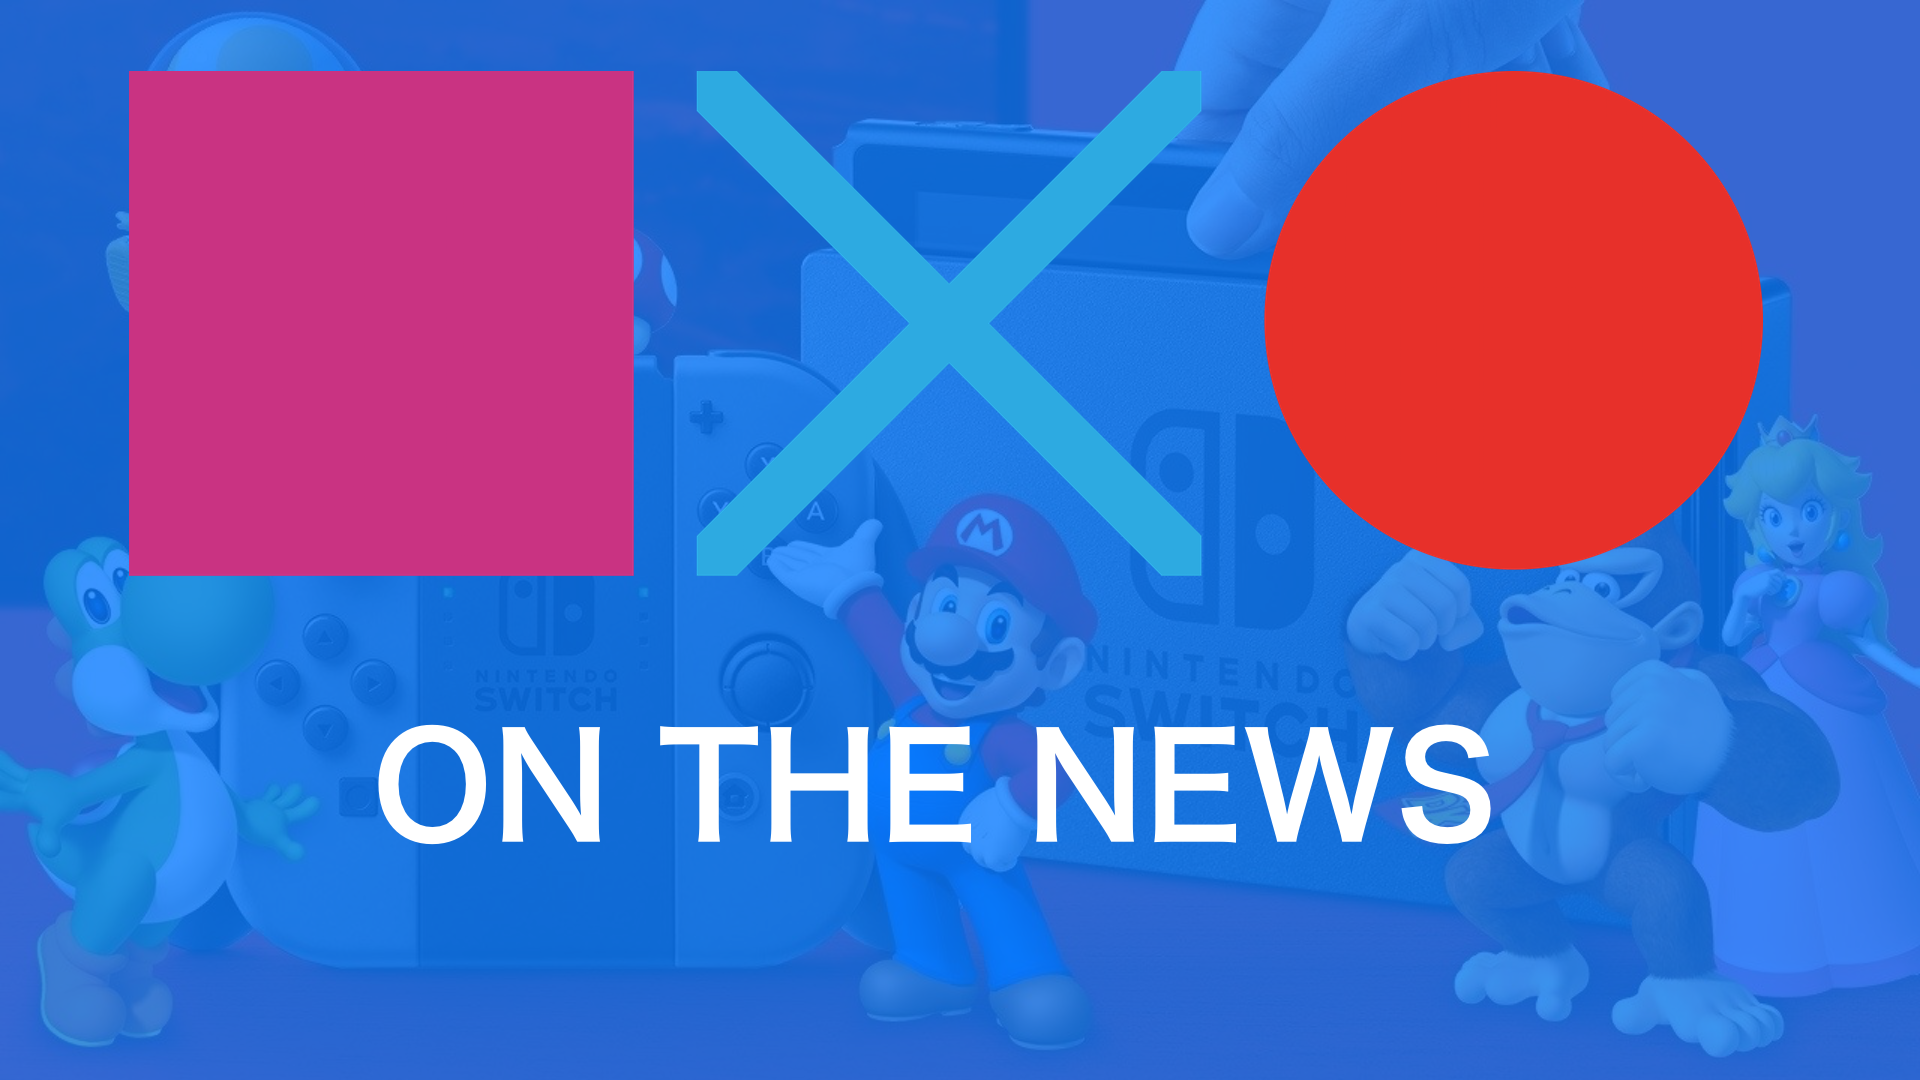 New Games Revealed + Nintendo Direct Detailed | SquareXO On The News